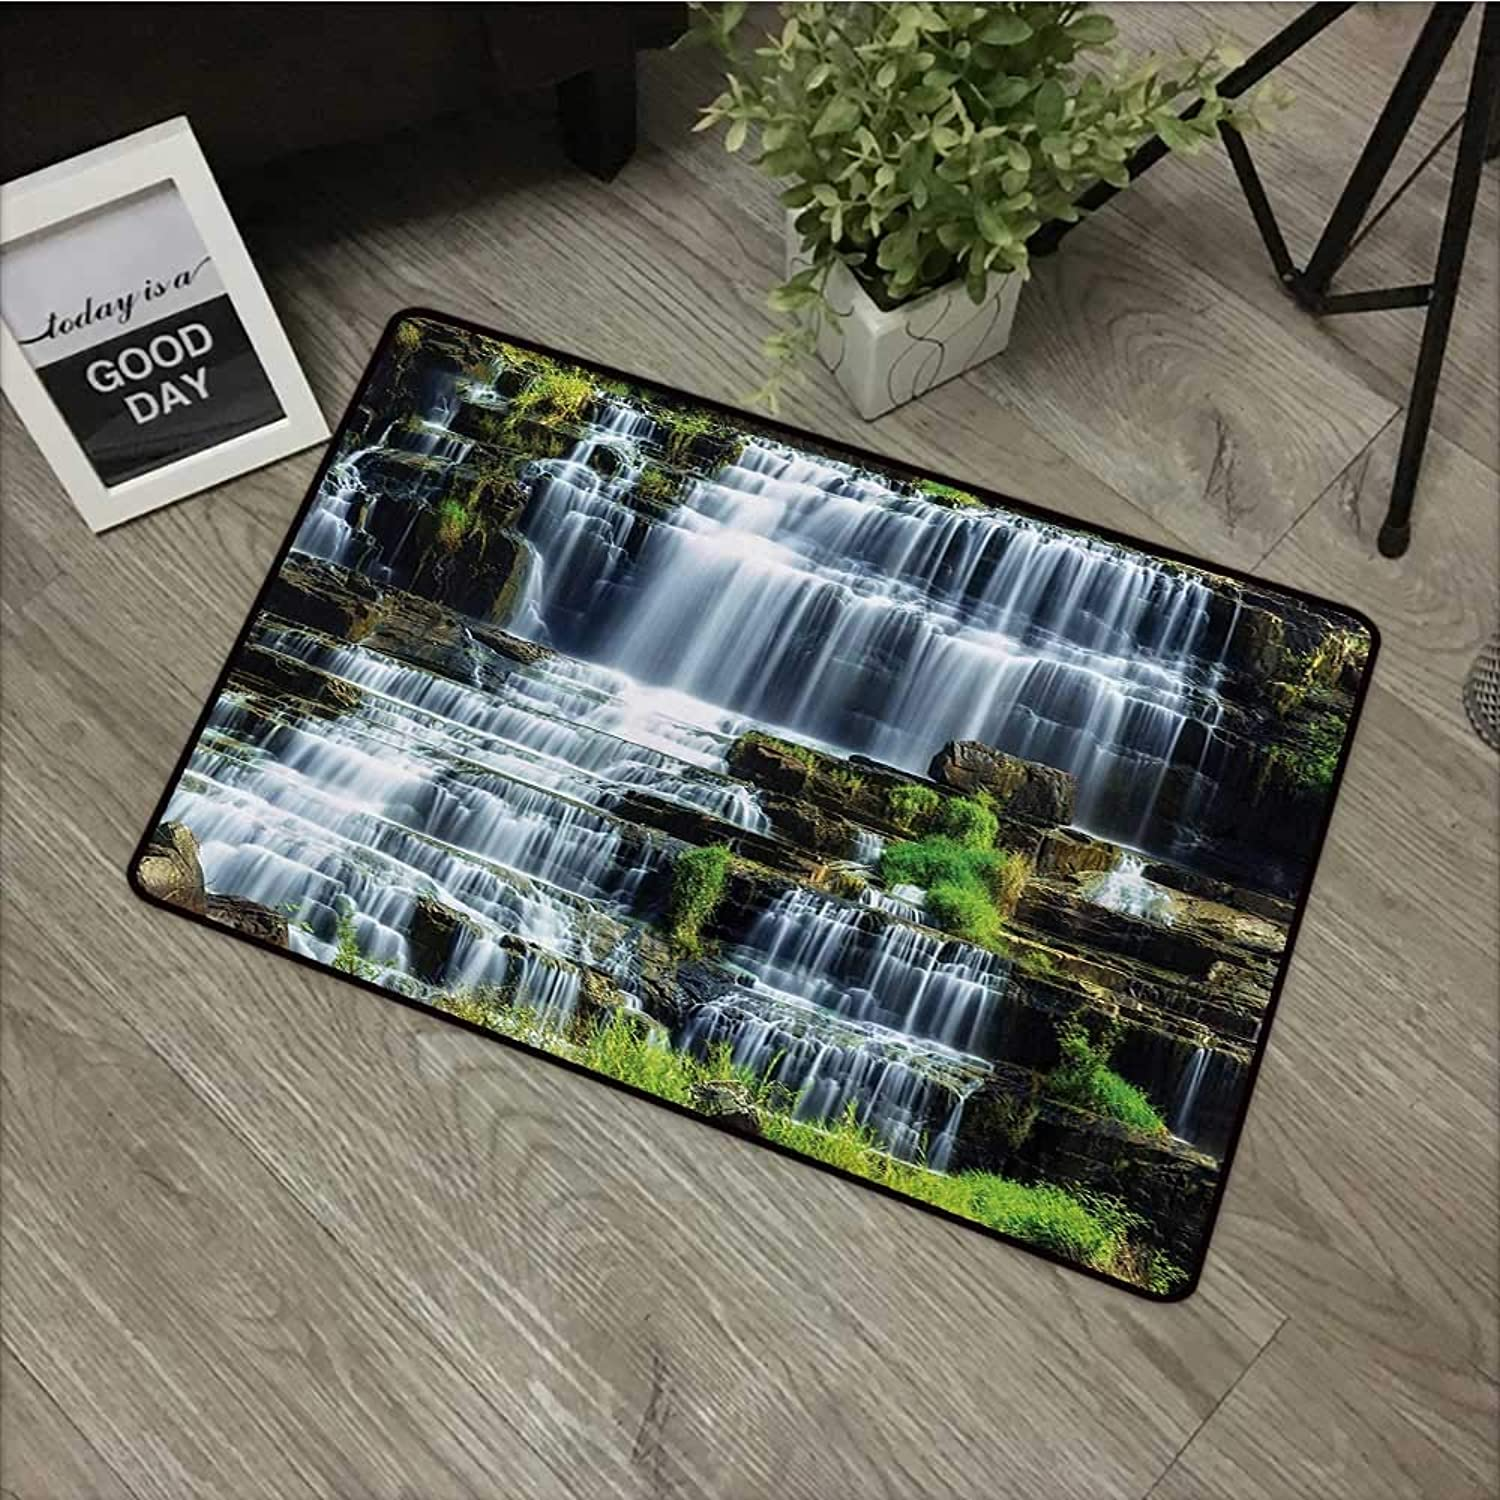 Interior Door mat W35 x L59 INCH Rainforest,Waterfall in The Middle of Tropical Jungle Natural Scenery Countryside Style,Green White Easy to Clean, no Deformation, no Fading Non-Slip Door Mat Carpet